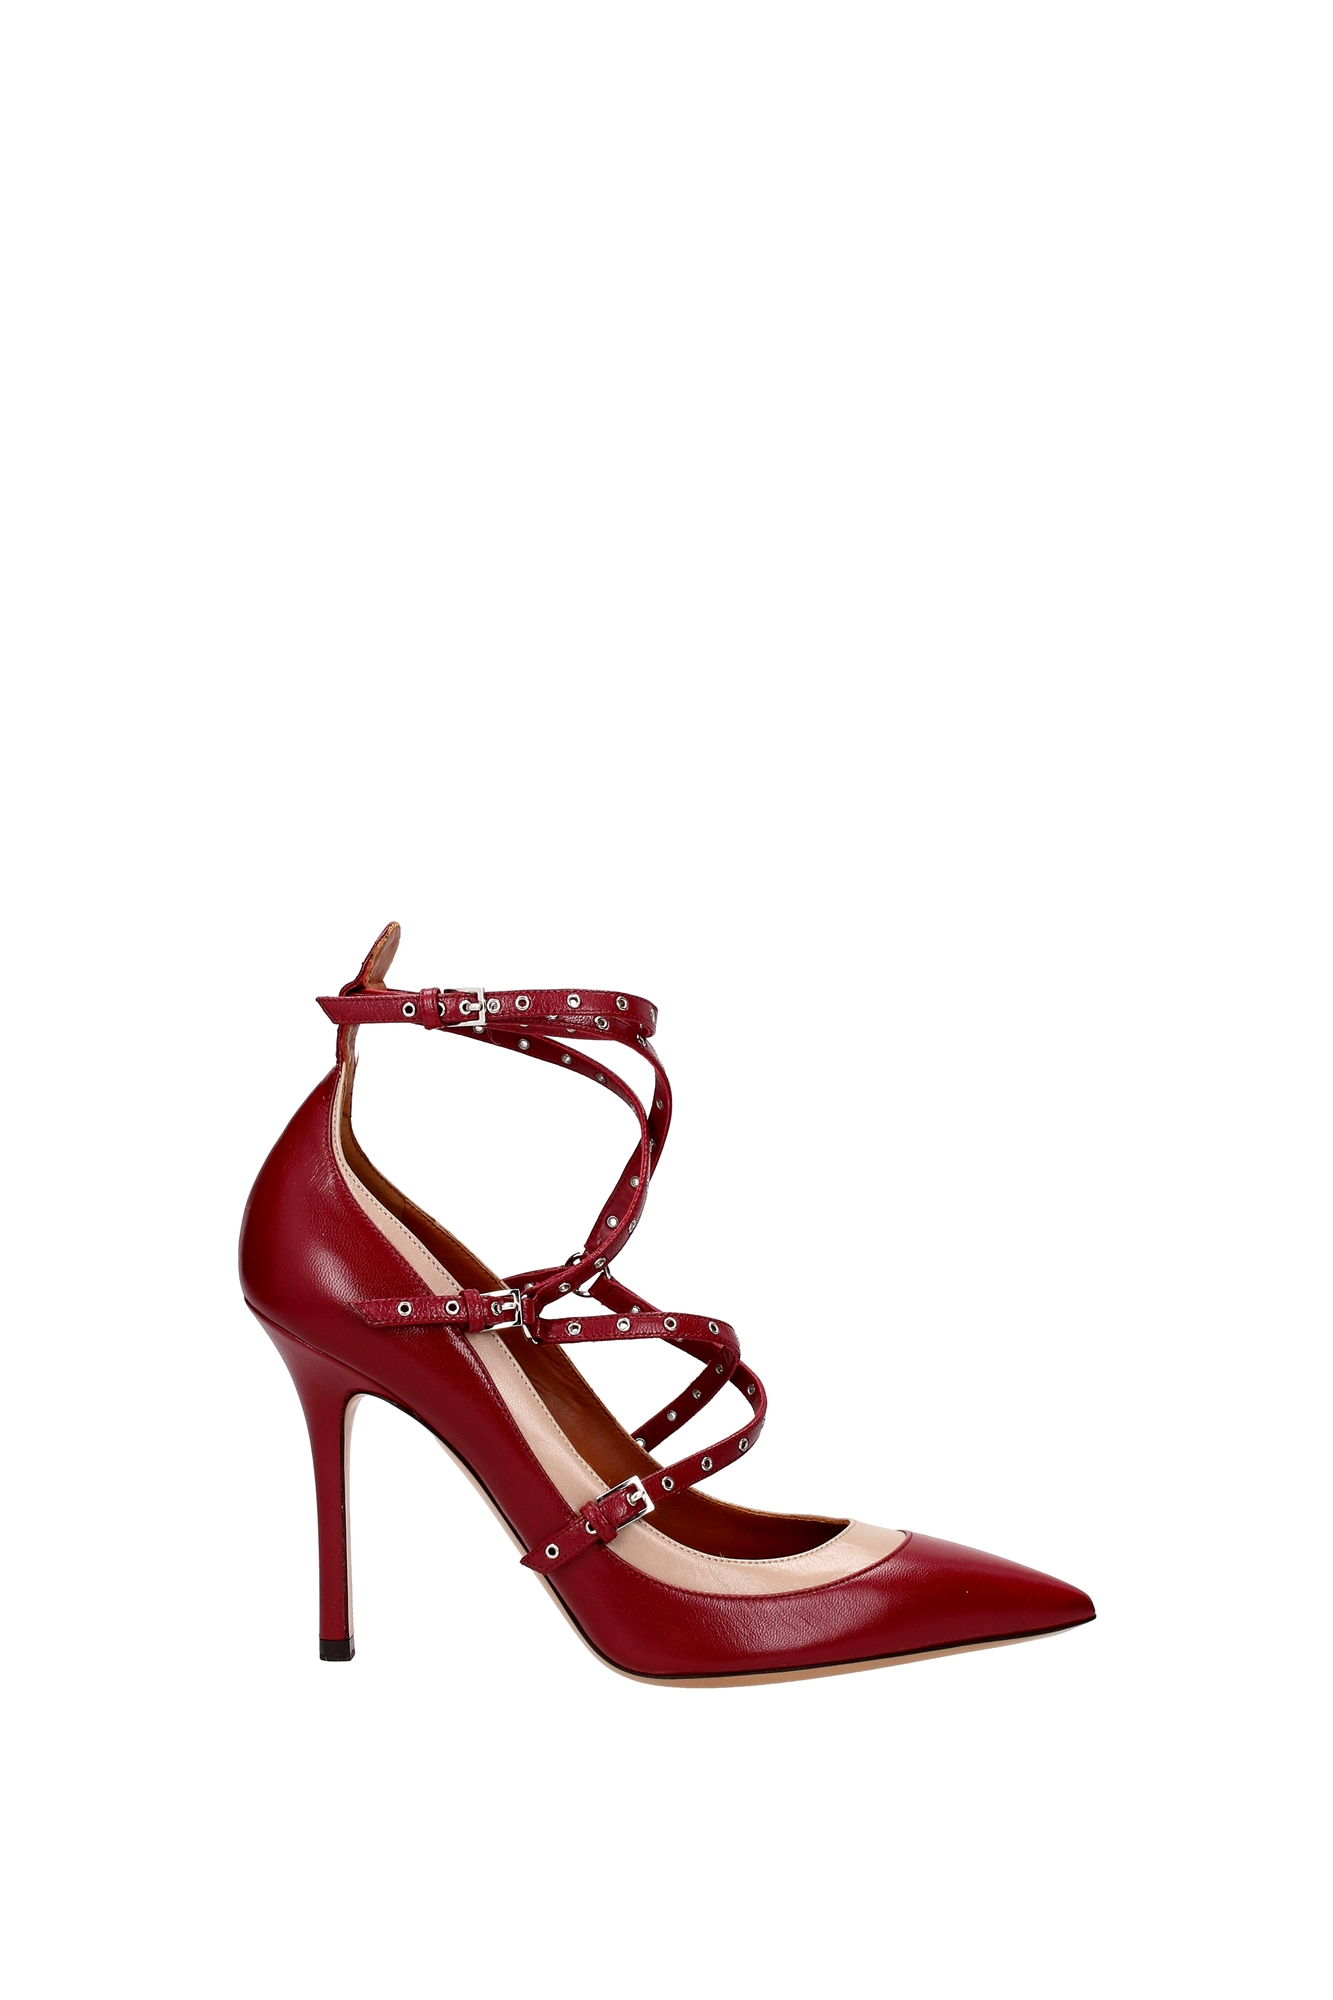 Pumps Valentino - Garavani Women - Valentino Leather (JW2S0944CCCS39) ad3925